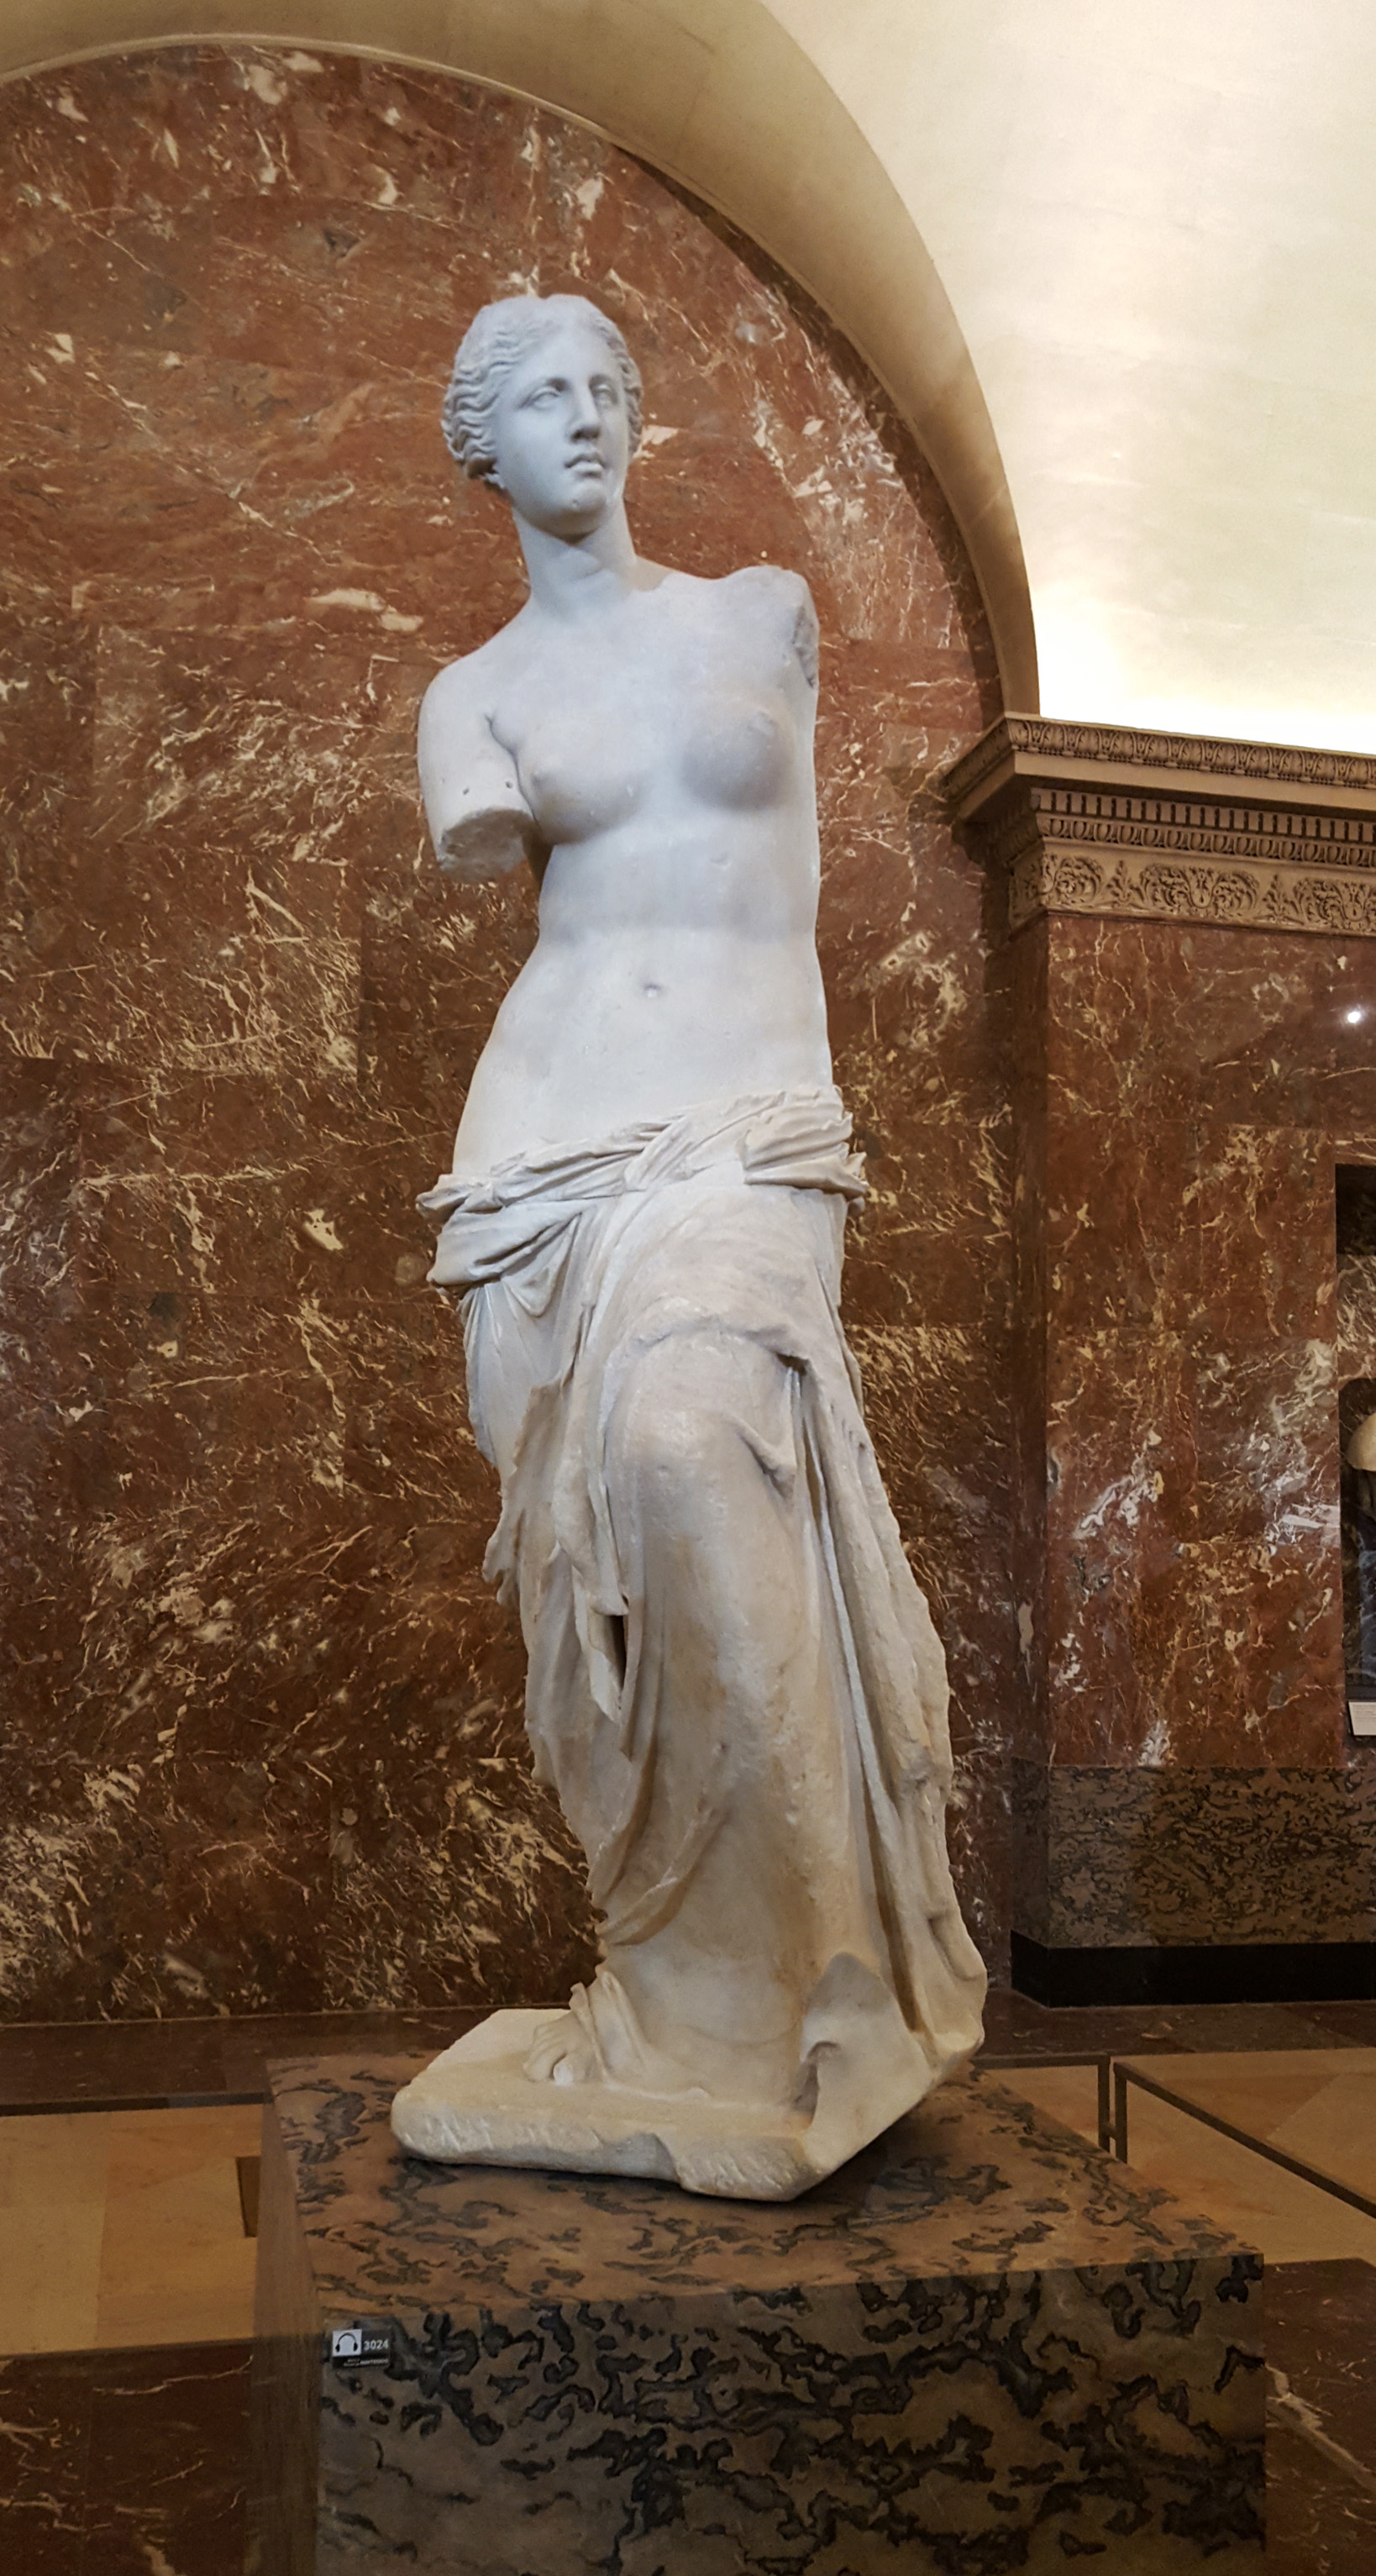 The Venus de Milo in the Louvre in Paris, France | visiting the Louvre at night